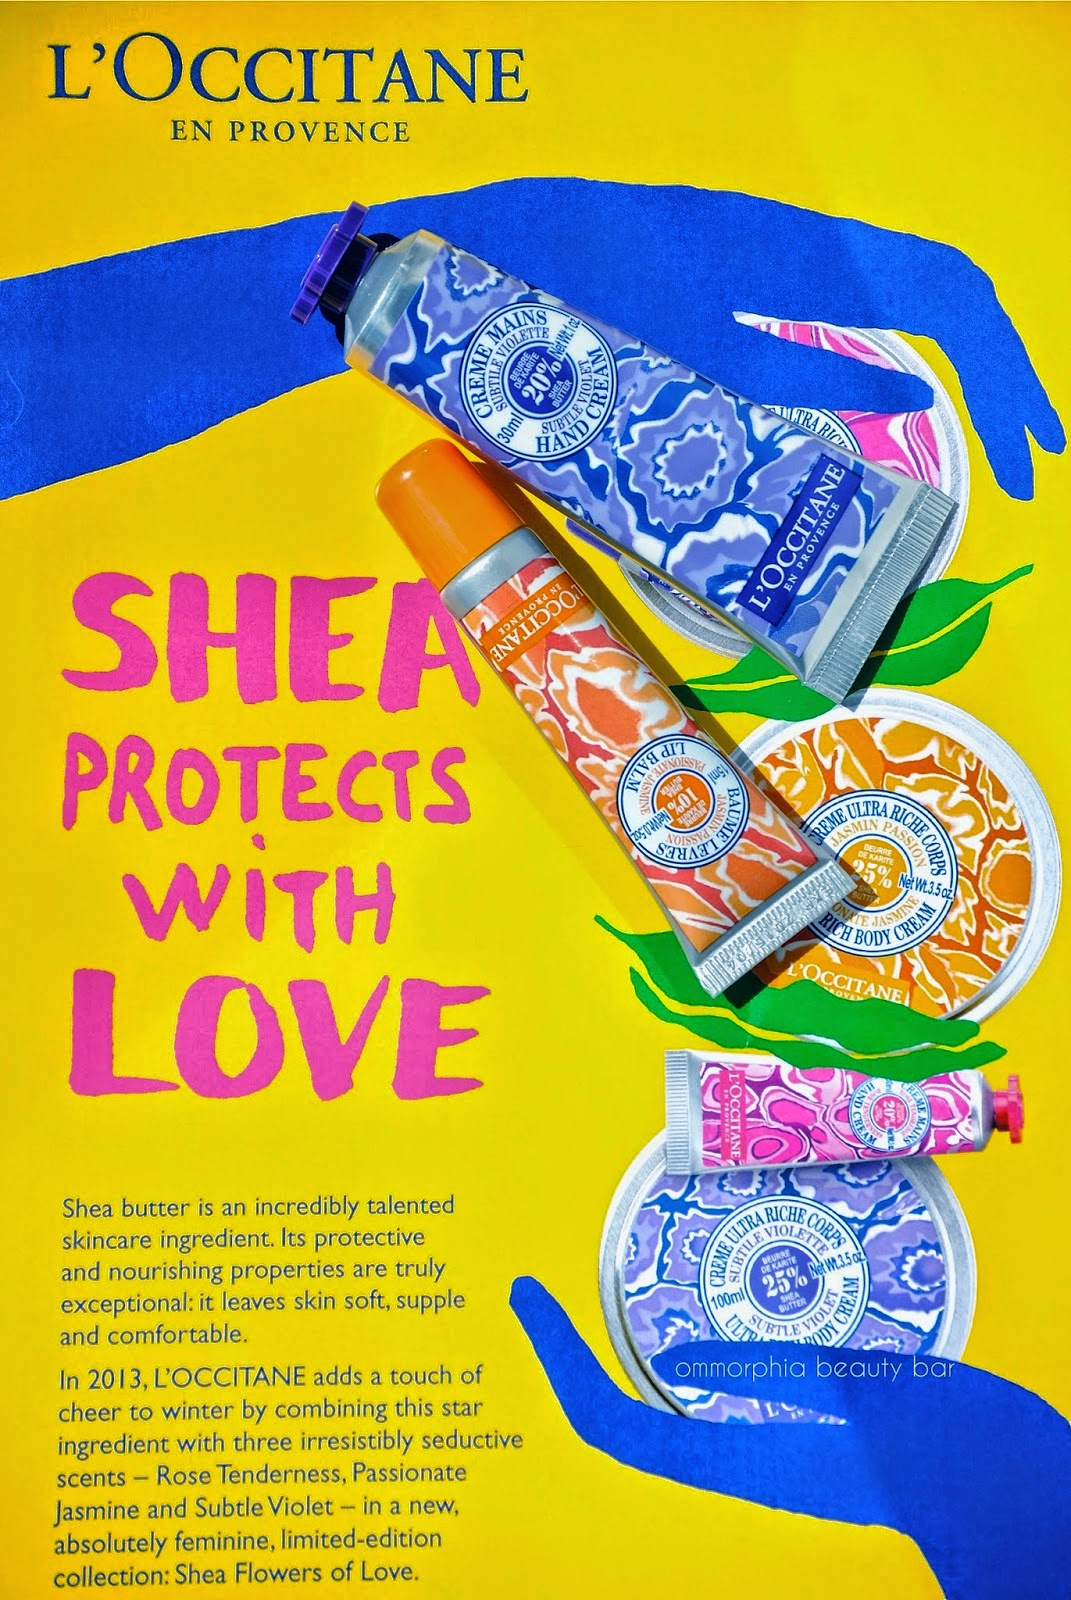 L'Occitane Limited Edition Shea Flowers of Love Collection